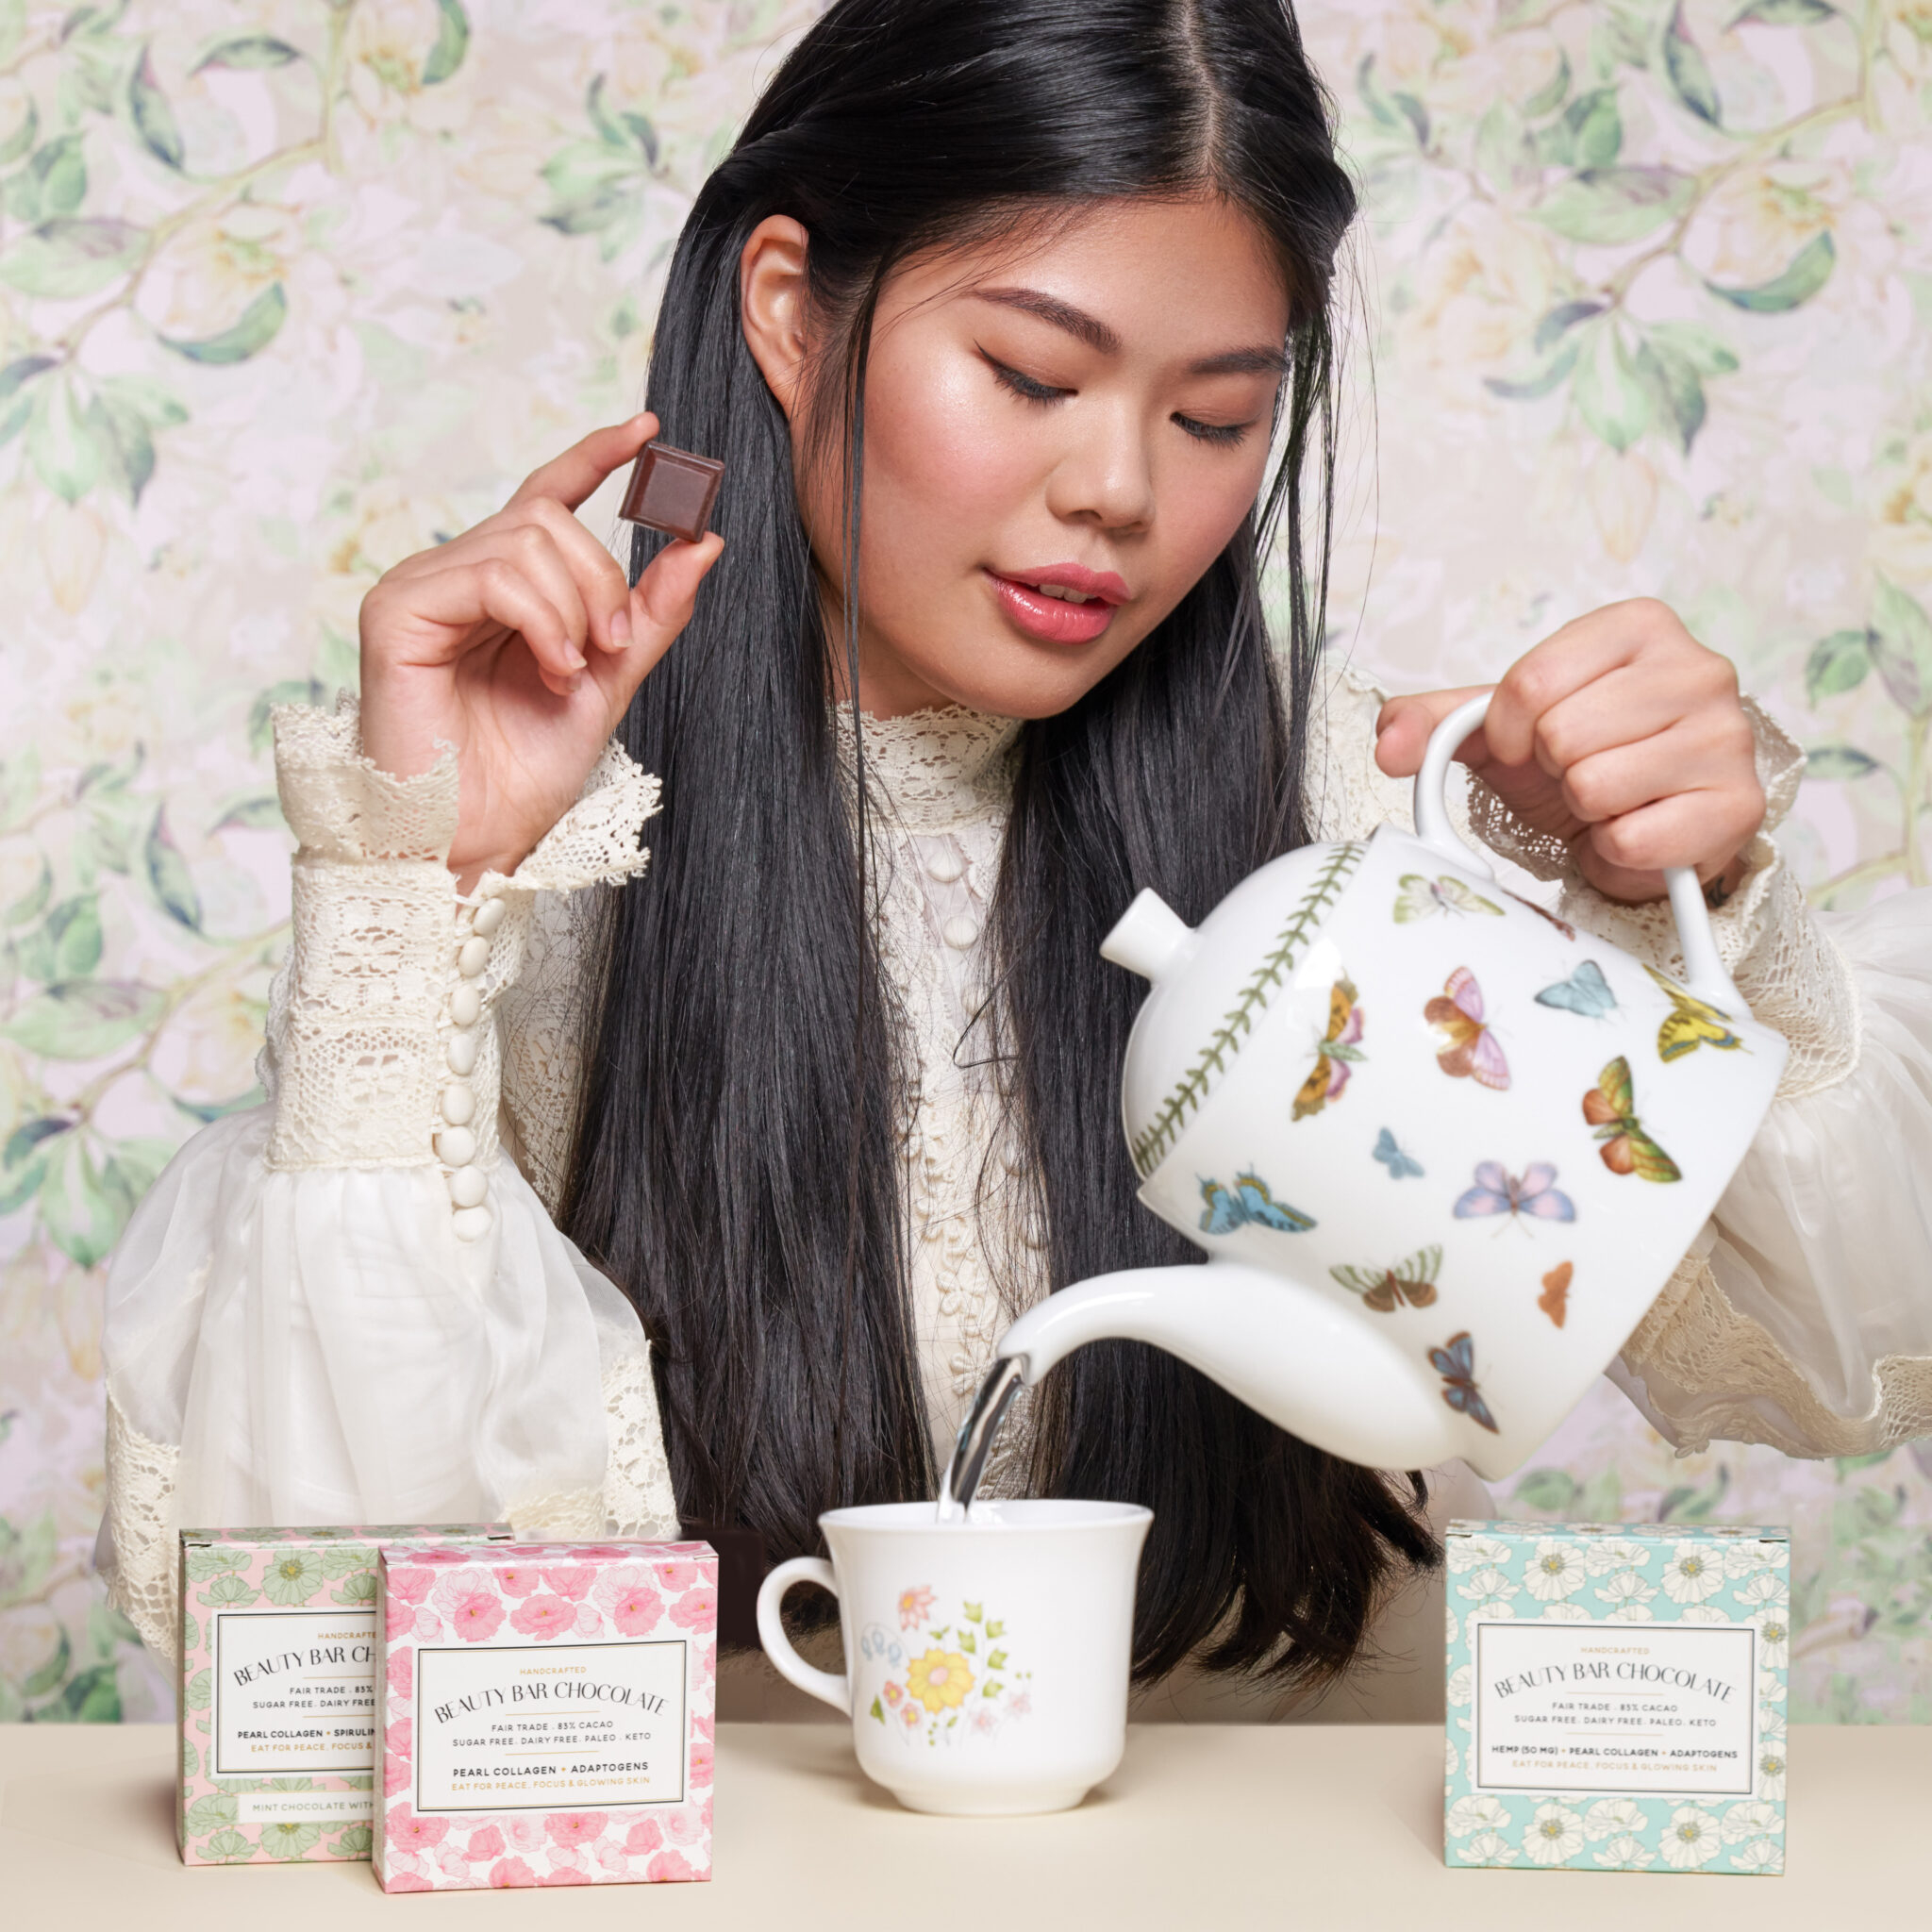 Beauty Bar Chocolate Image Nailed It Women pouring tea with chocolate boxes and flower backdrop